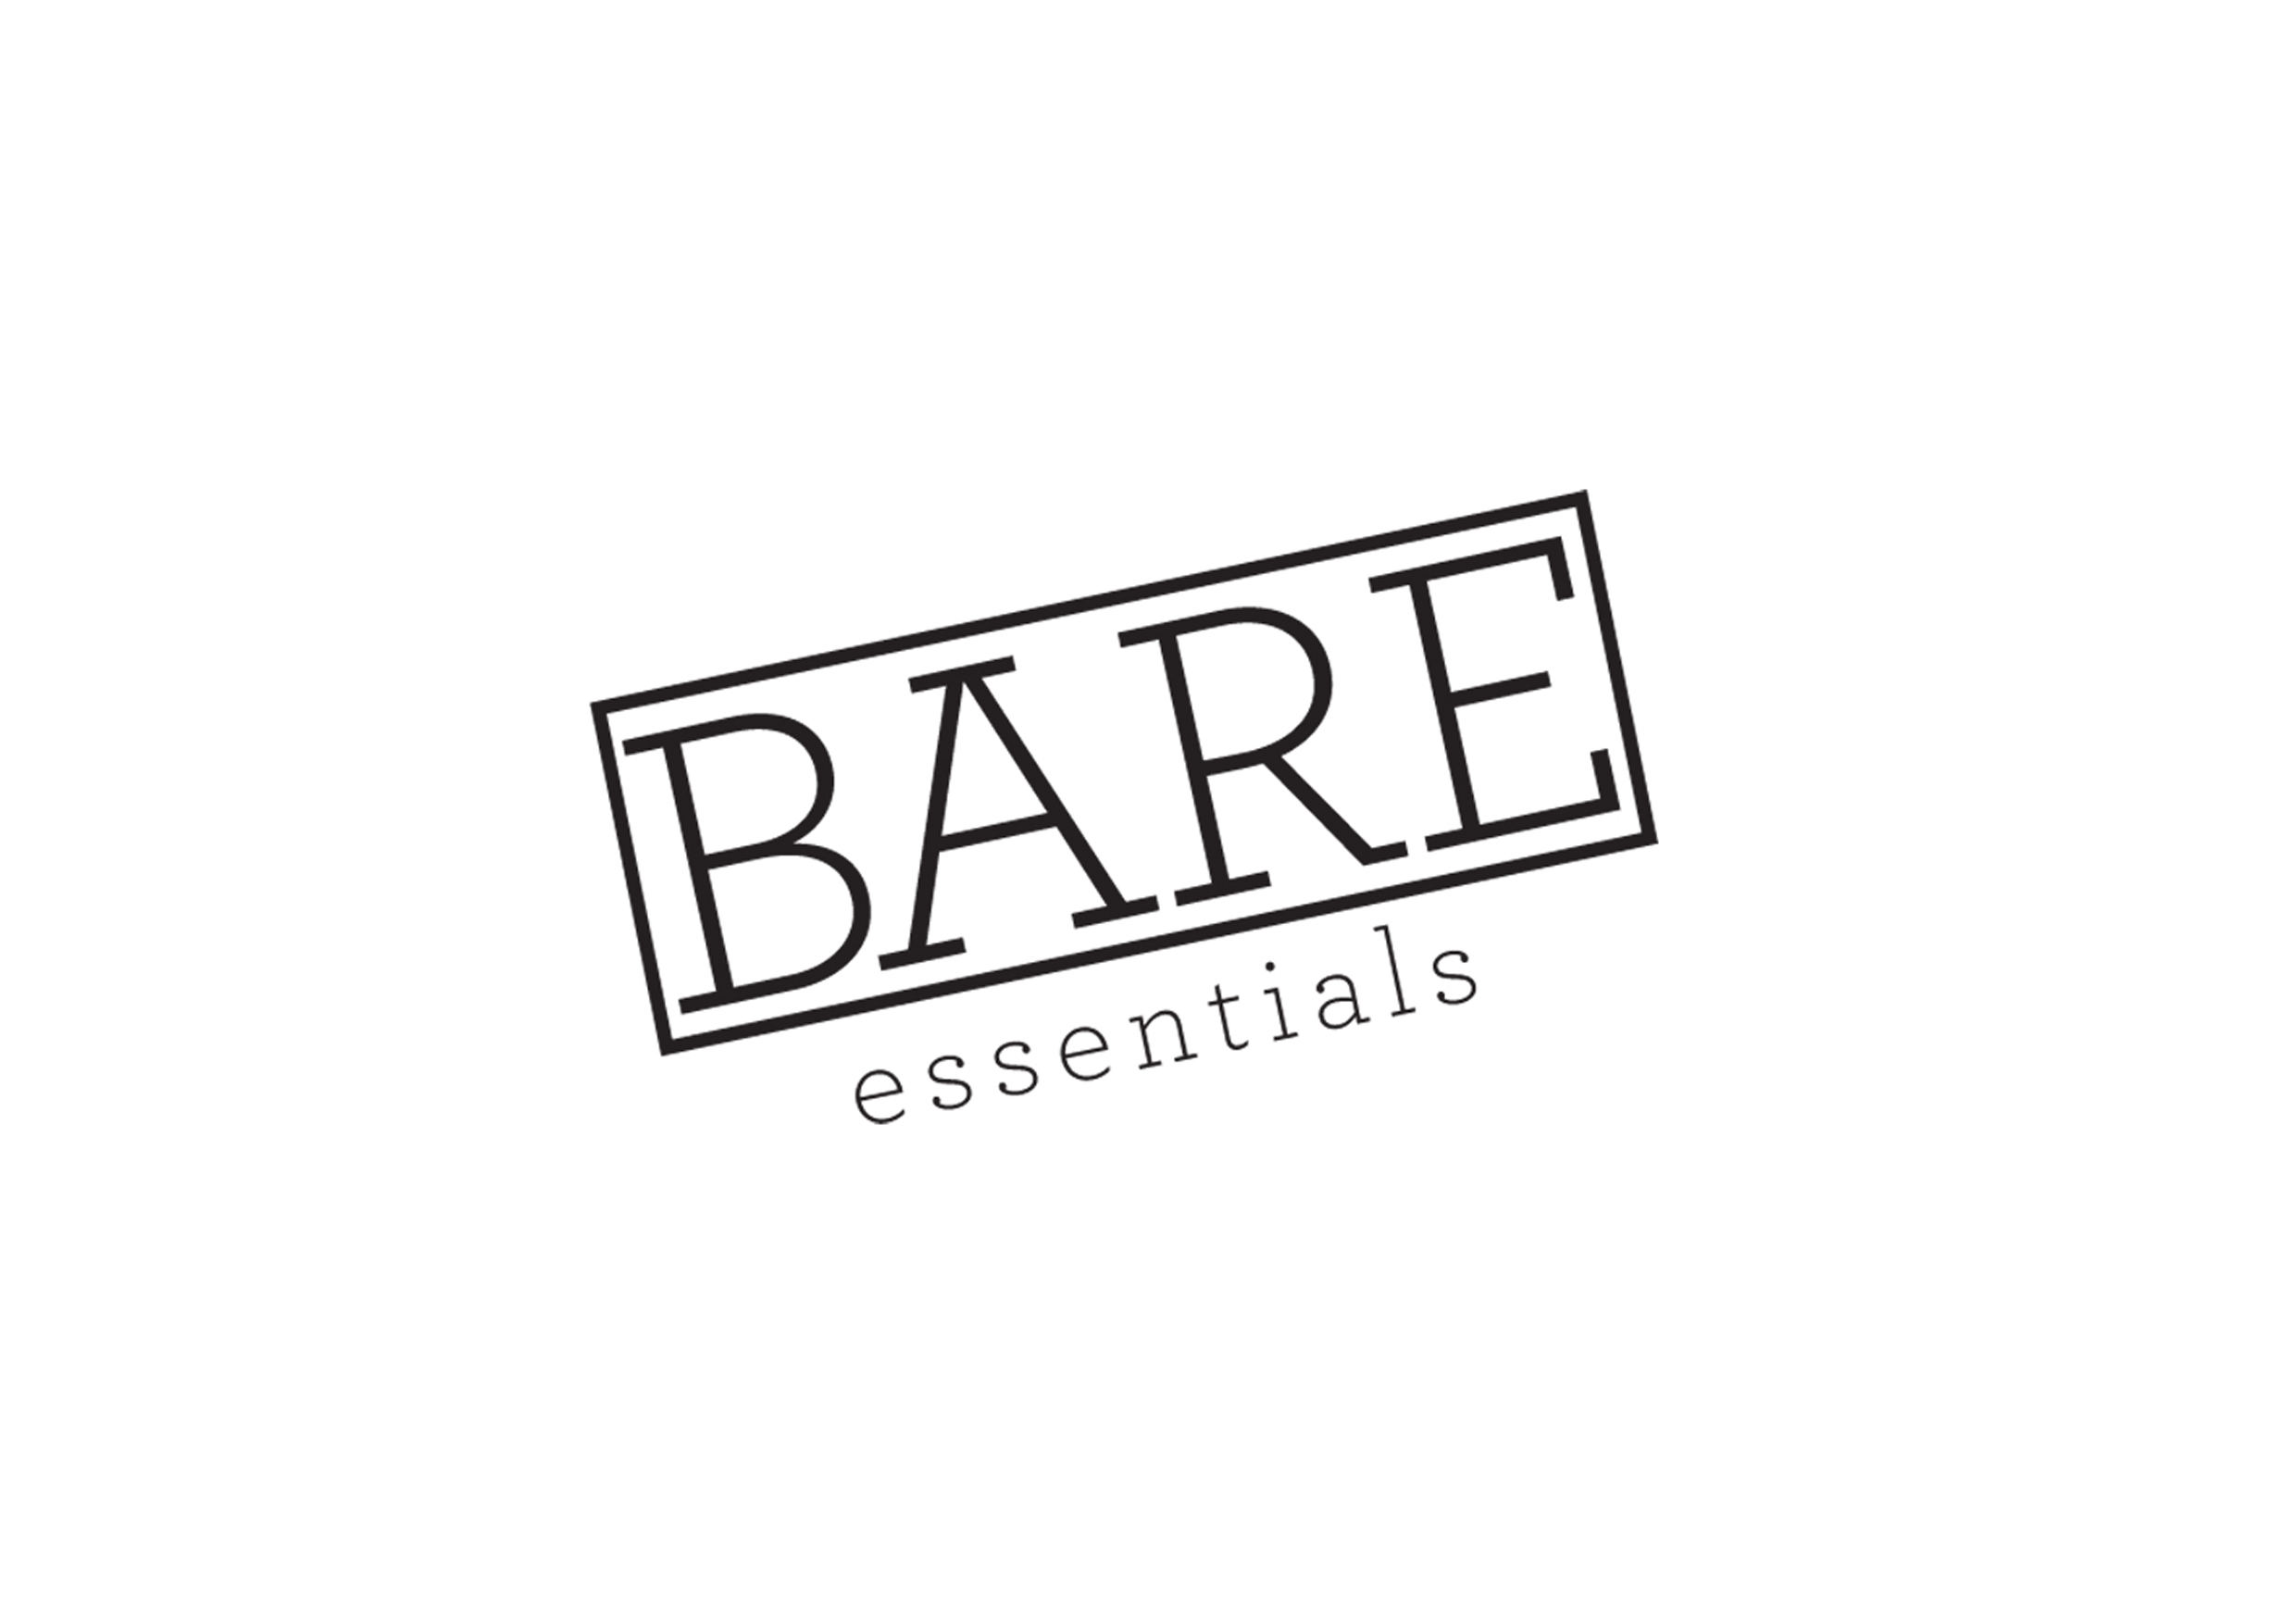 BARE ESSENTIALS LOGO